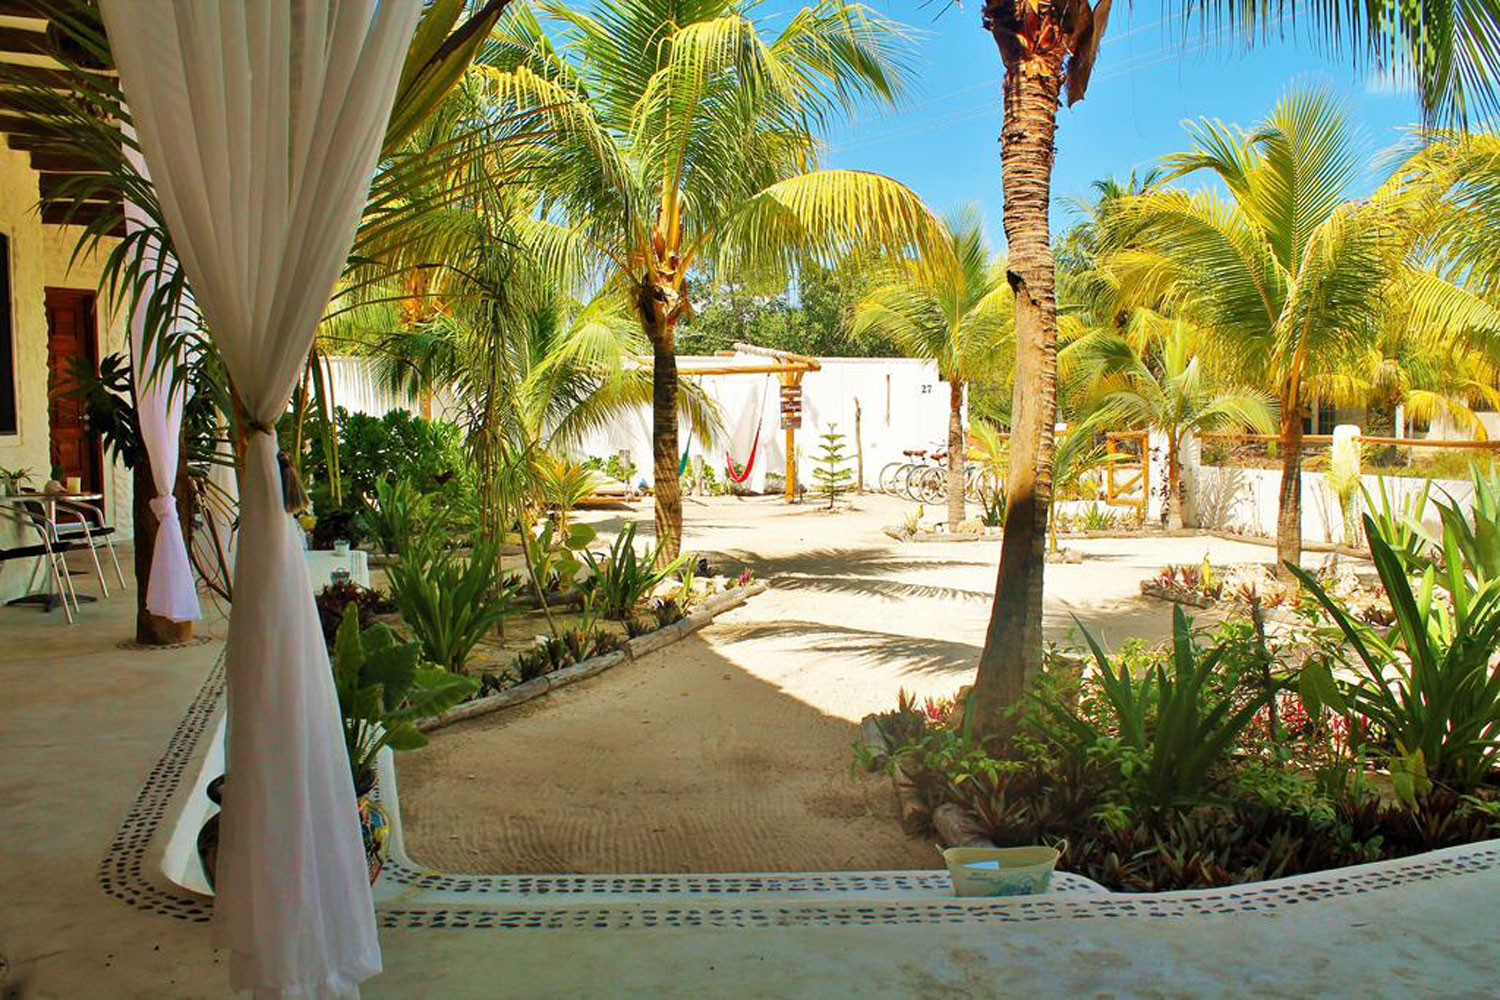 Hammocks_and_Ruins_Riviera_Maya_What_to_Do_Cancun_Playa_Del_Carmen_Islands_Isla_Holbox_11.jpg